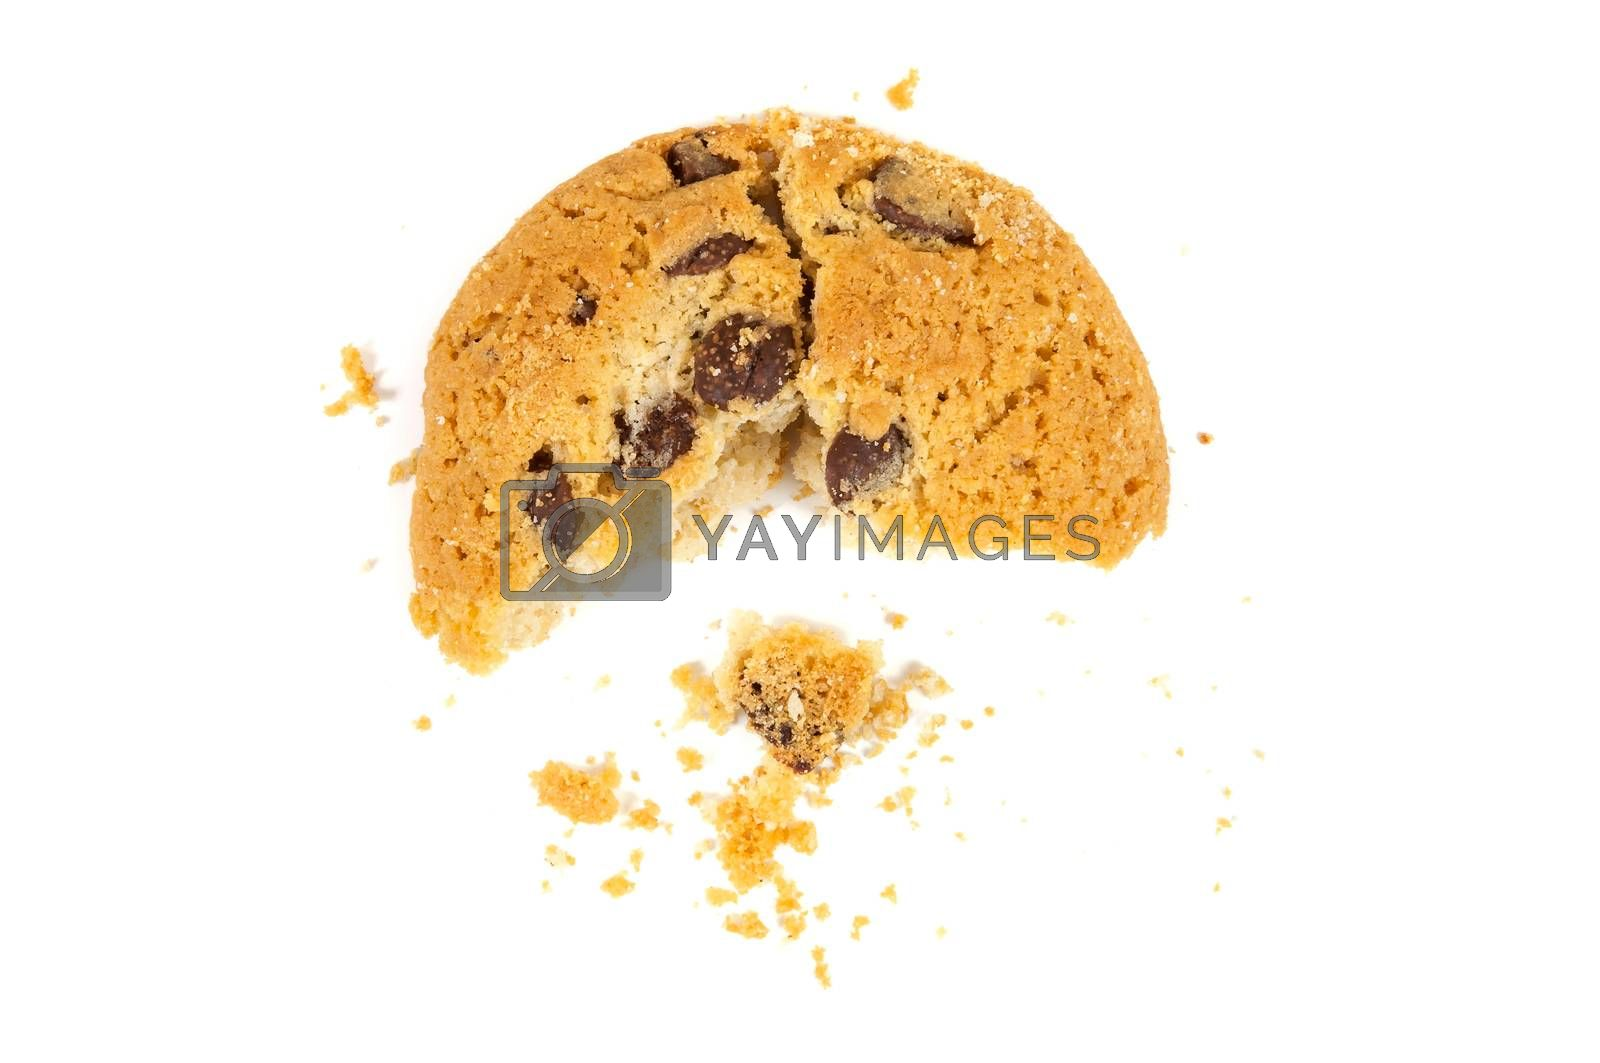 Royalty free image of Half eaten chocolate chips cookie by mkos83